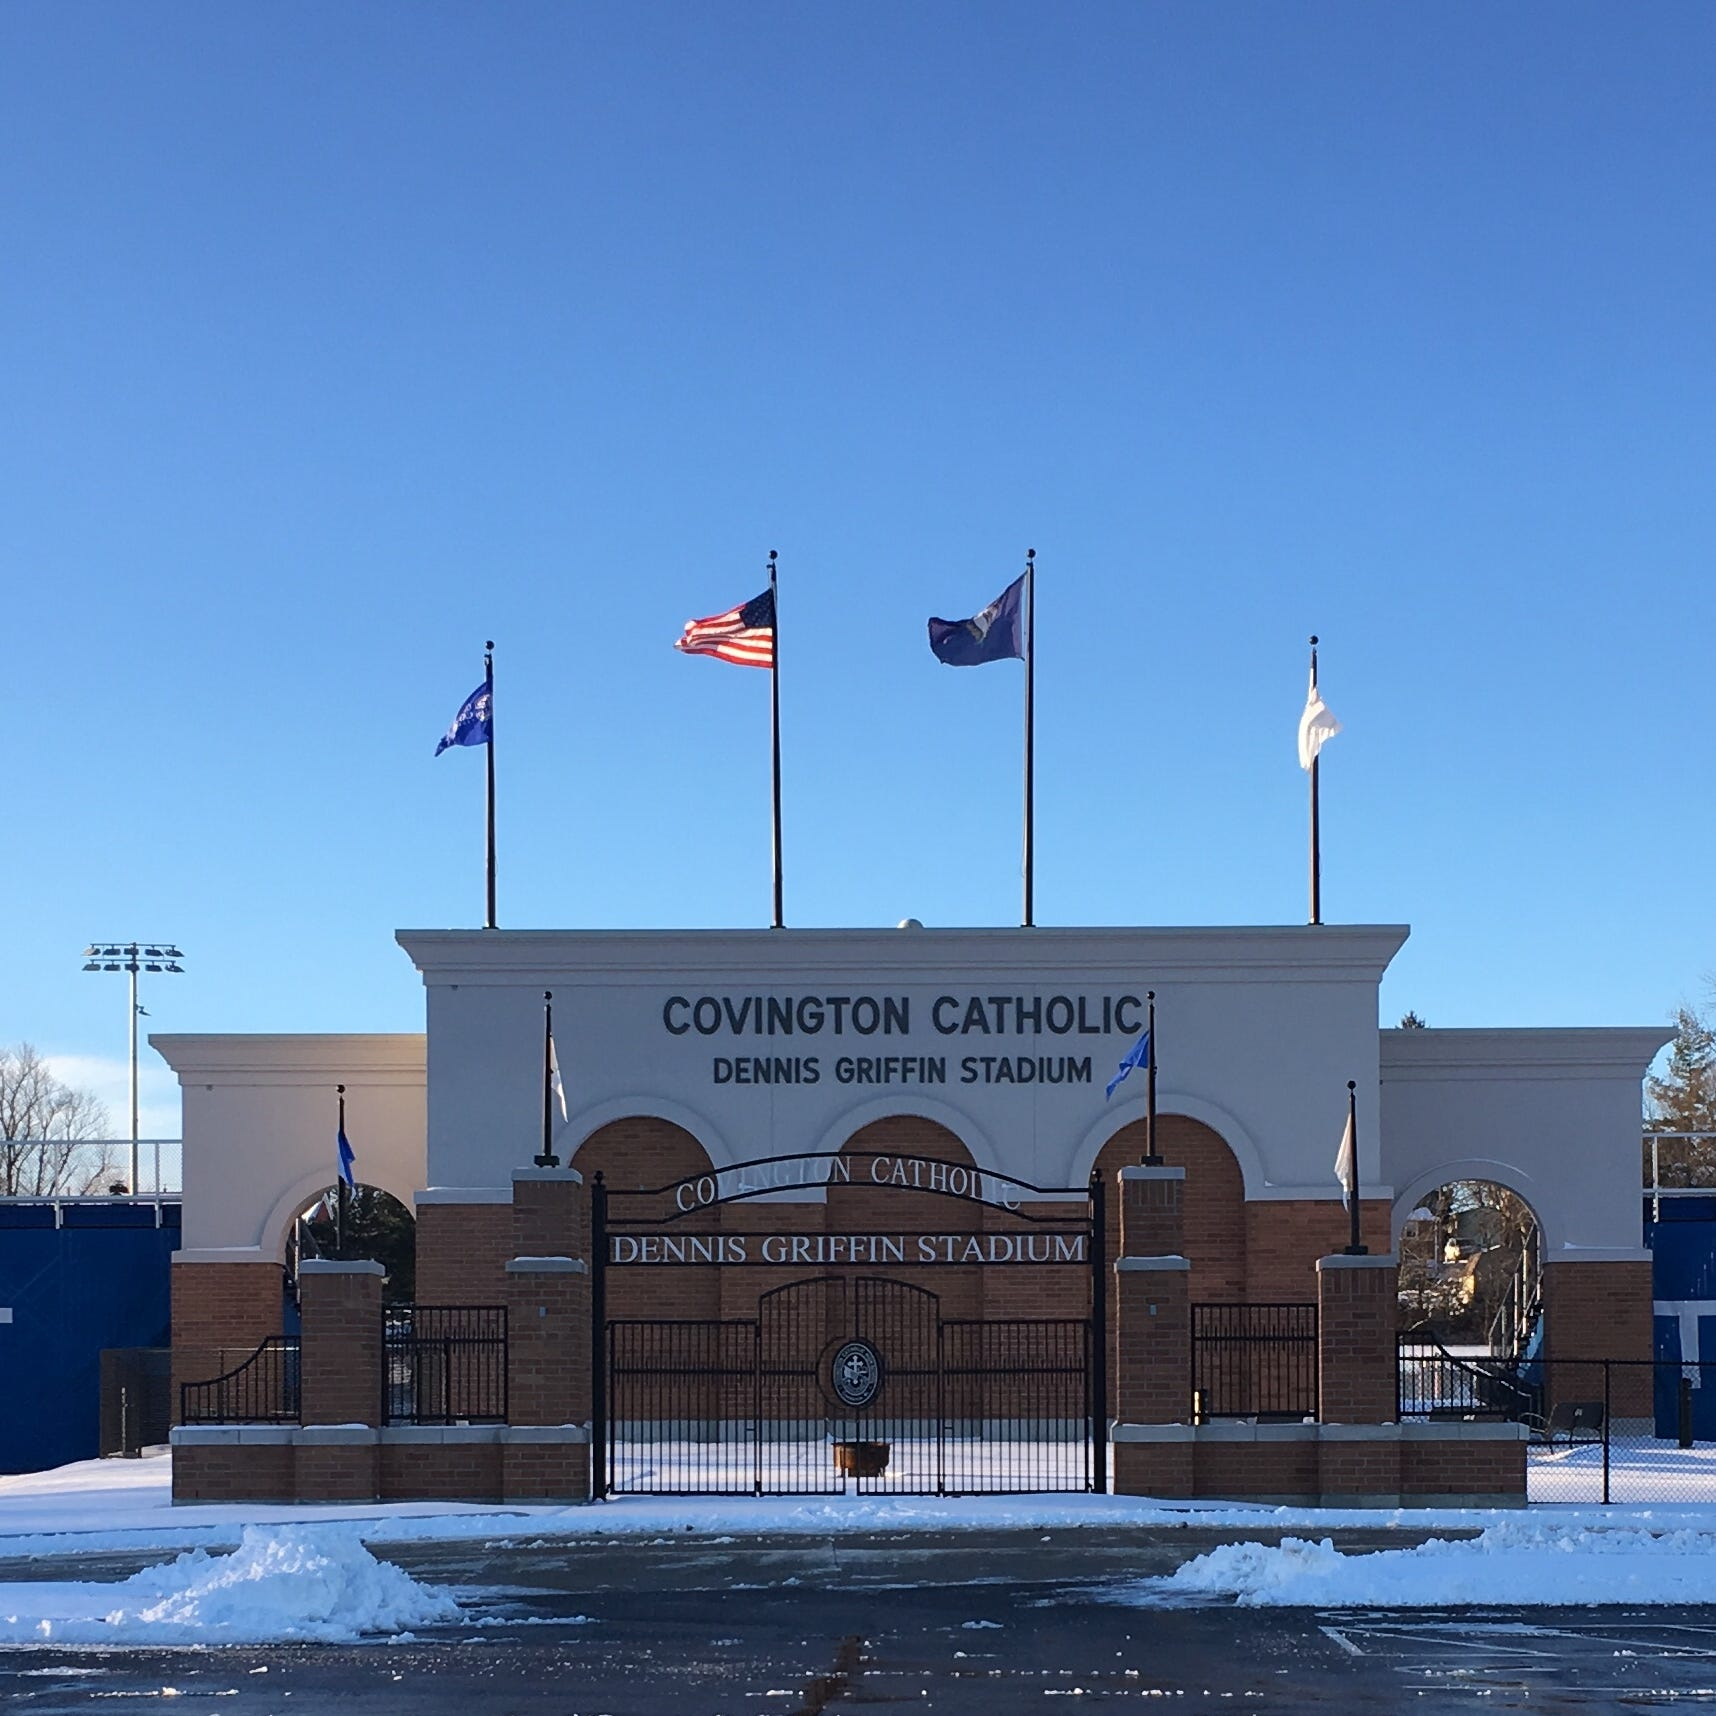 All was quiet Sunday, Jan. 20, 2019, on the Covington Catholic High School campus in Park Hills, Kentucky.